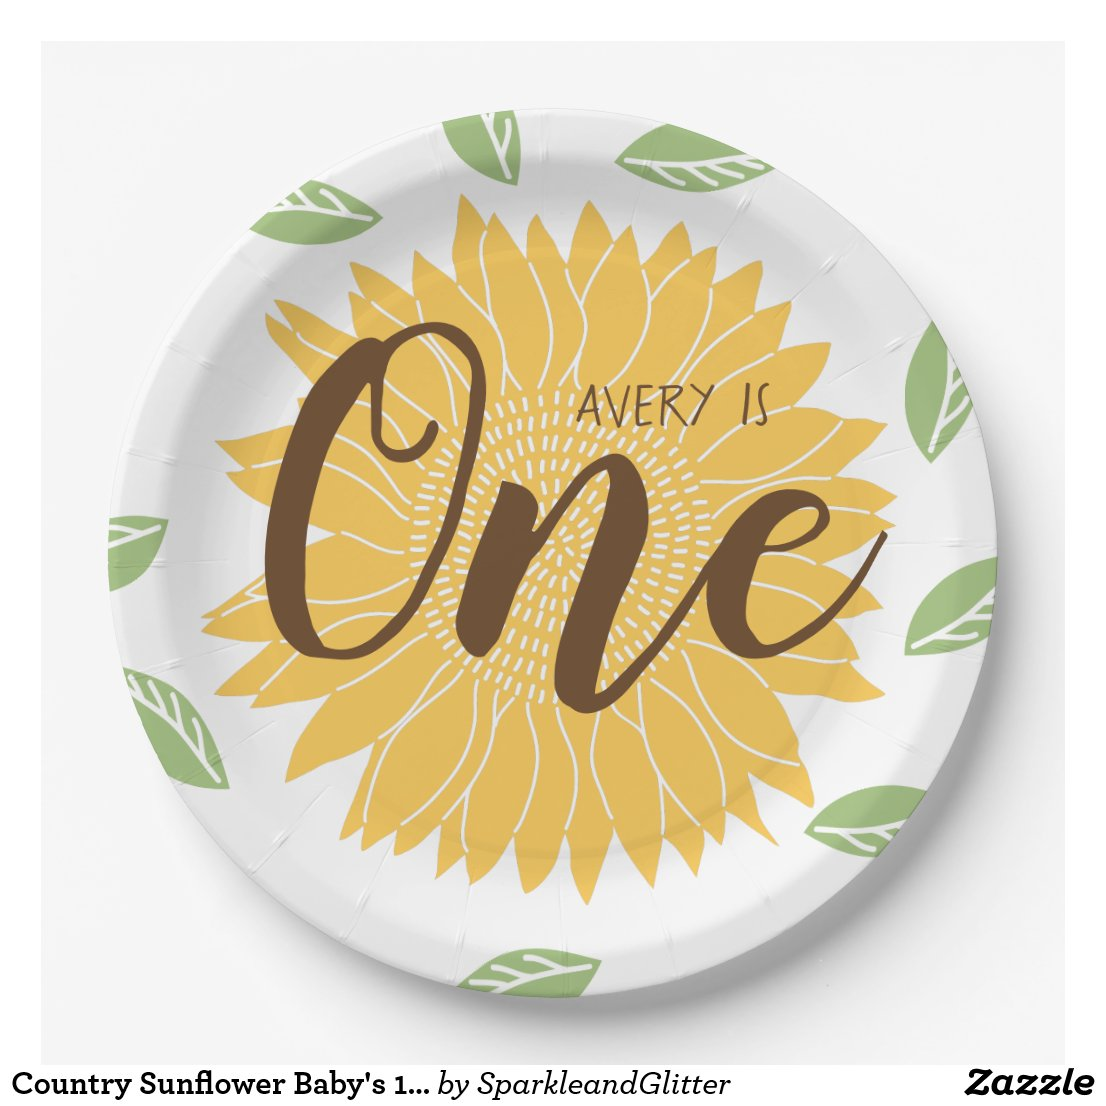 Country Sunflower Baby's 1st Birthday Paper Plate